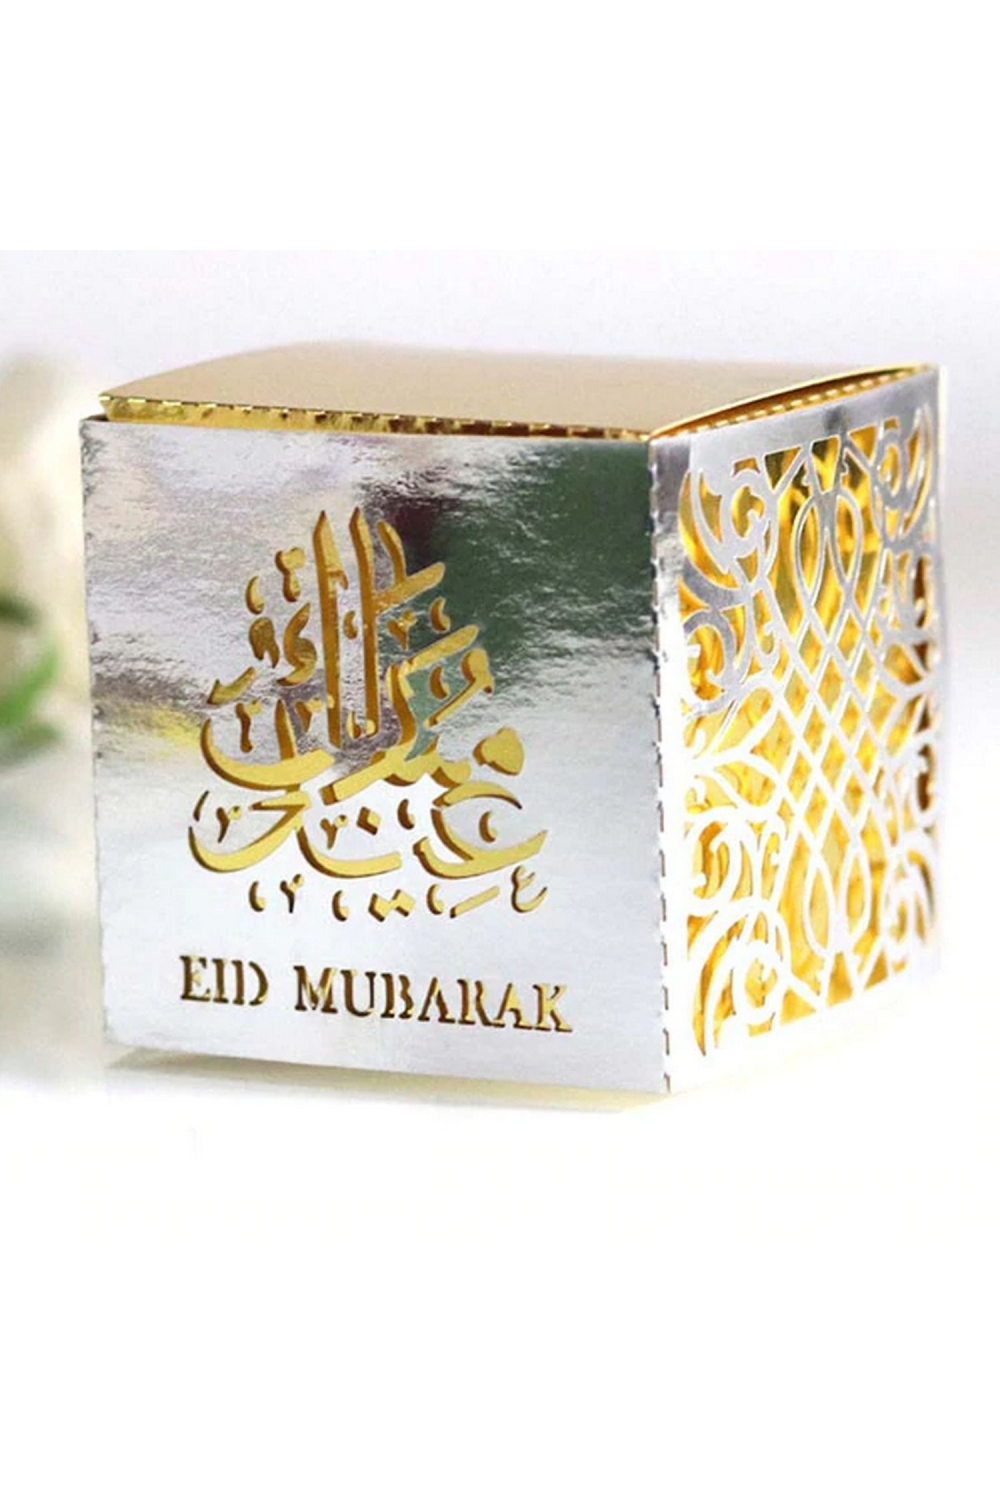 Eid Mubarak Calligraphy Candy Box Or Cookie Batch Of 10 Color Silver Color Silver